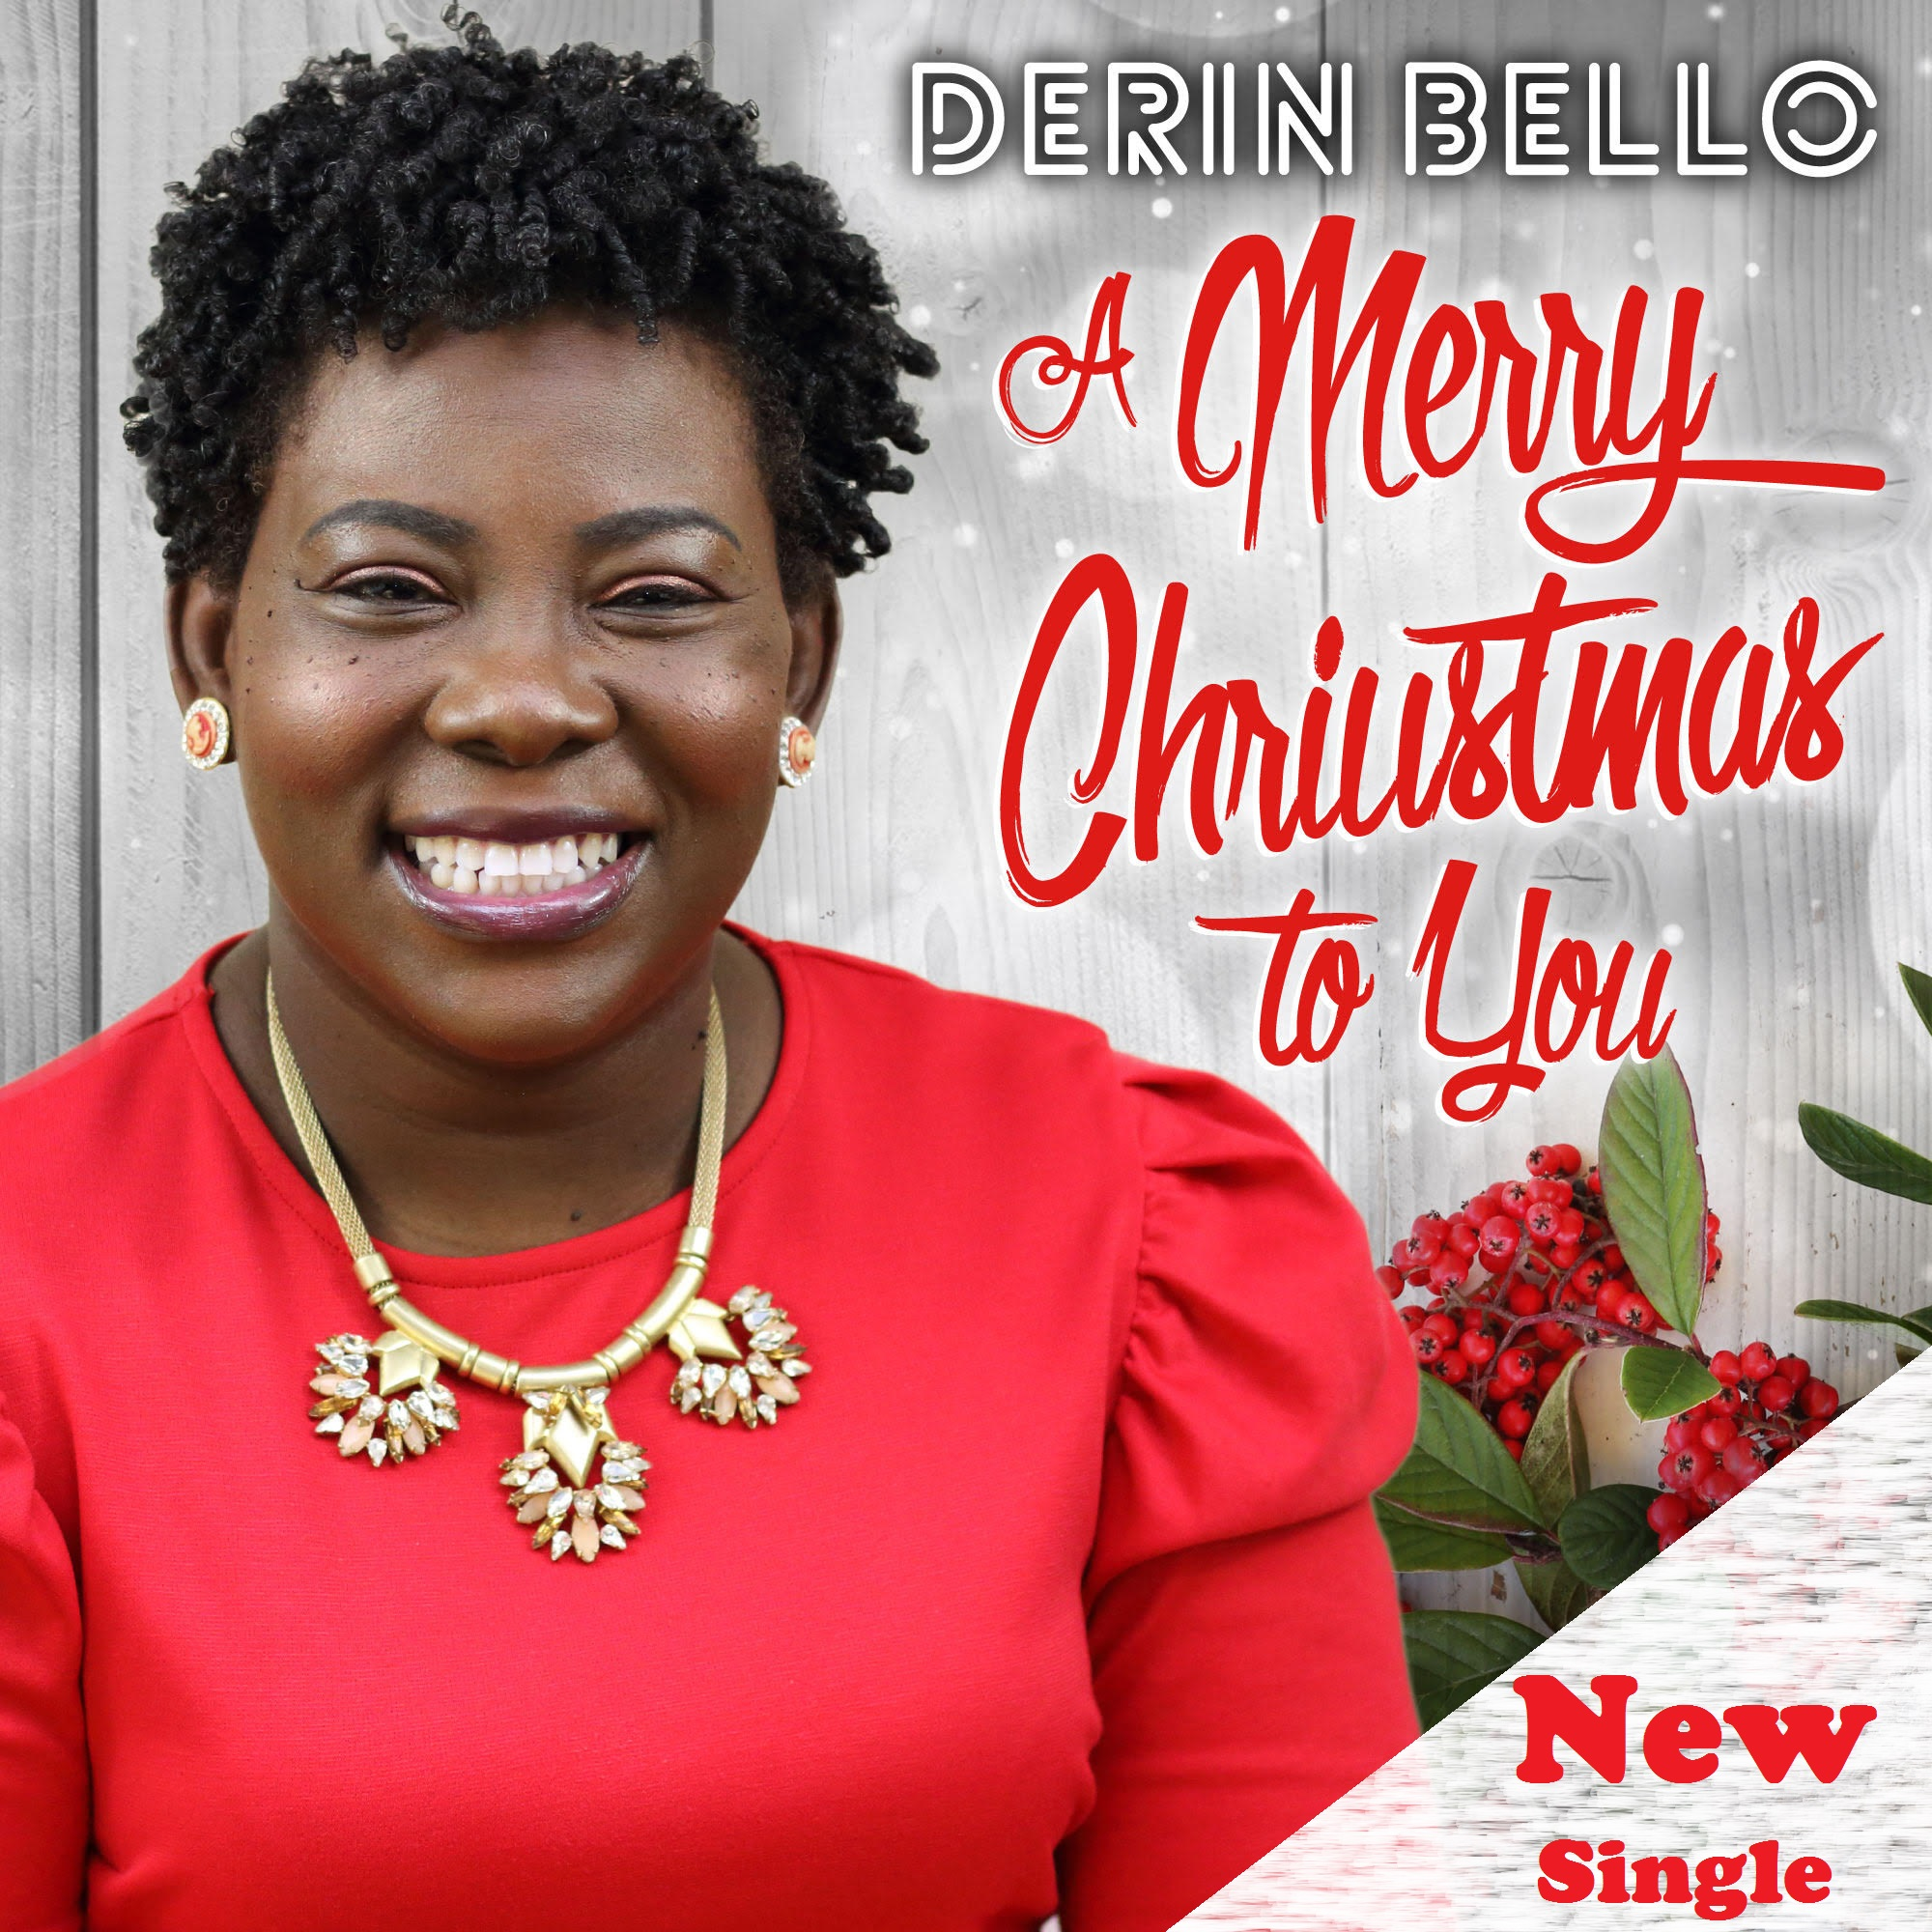 Music: A Merry Christmas To You (Audio/Video) ~ Derin Bello [@DerinBello]